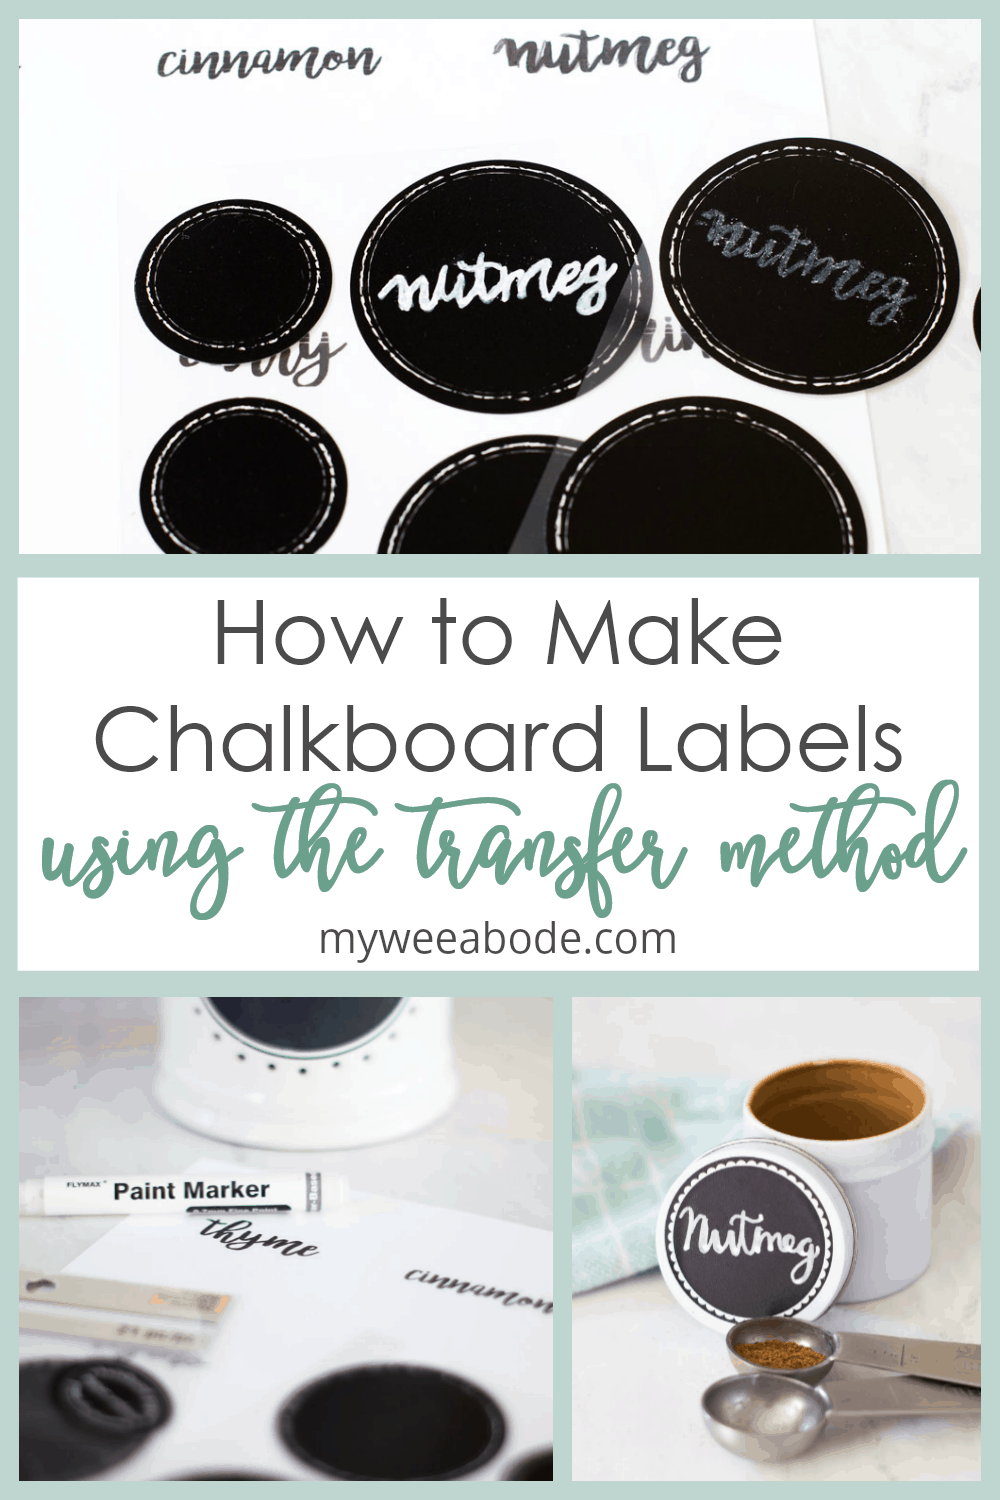 diy chalkboard font labels various picture of chalk labels and steps for diy